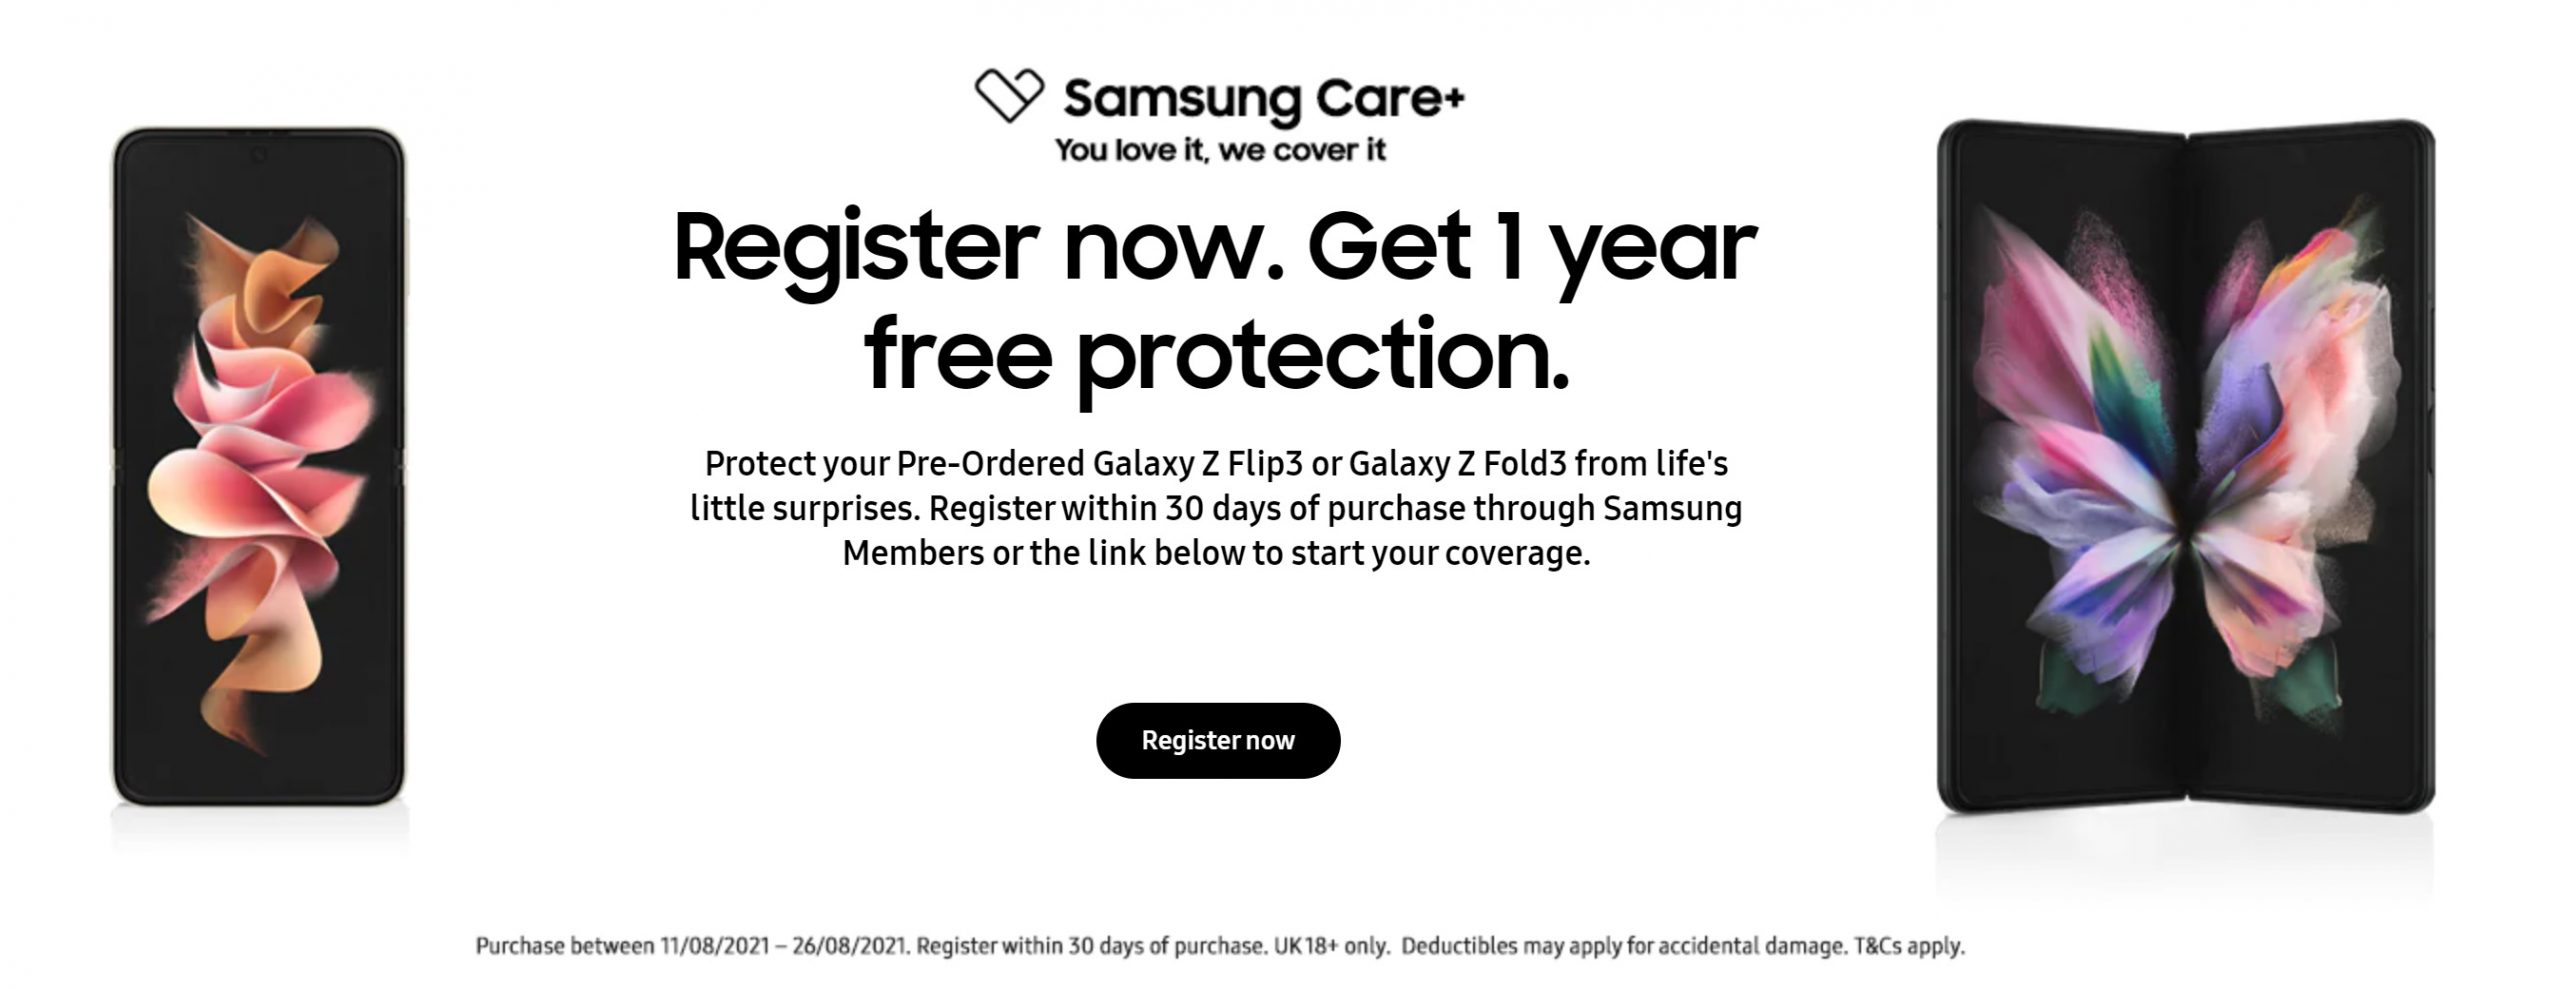 Free Samsung Care+ insurance with Galaxy Z Flip3 and Fold3 deals